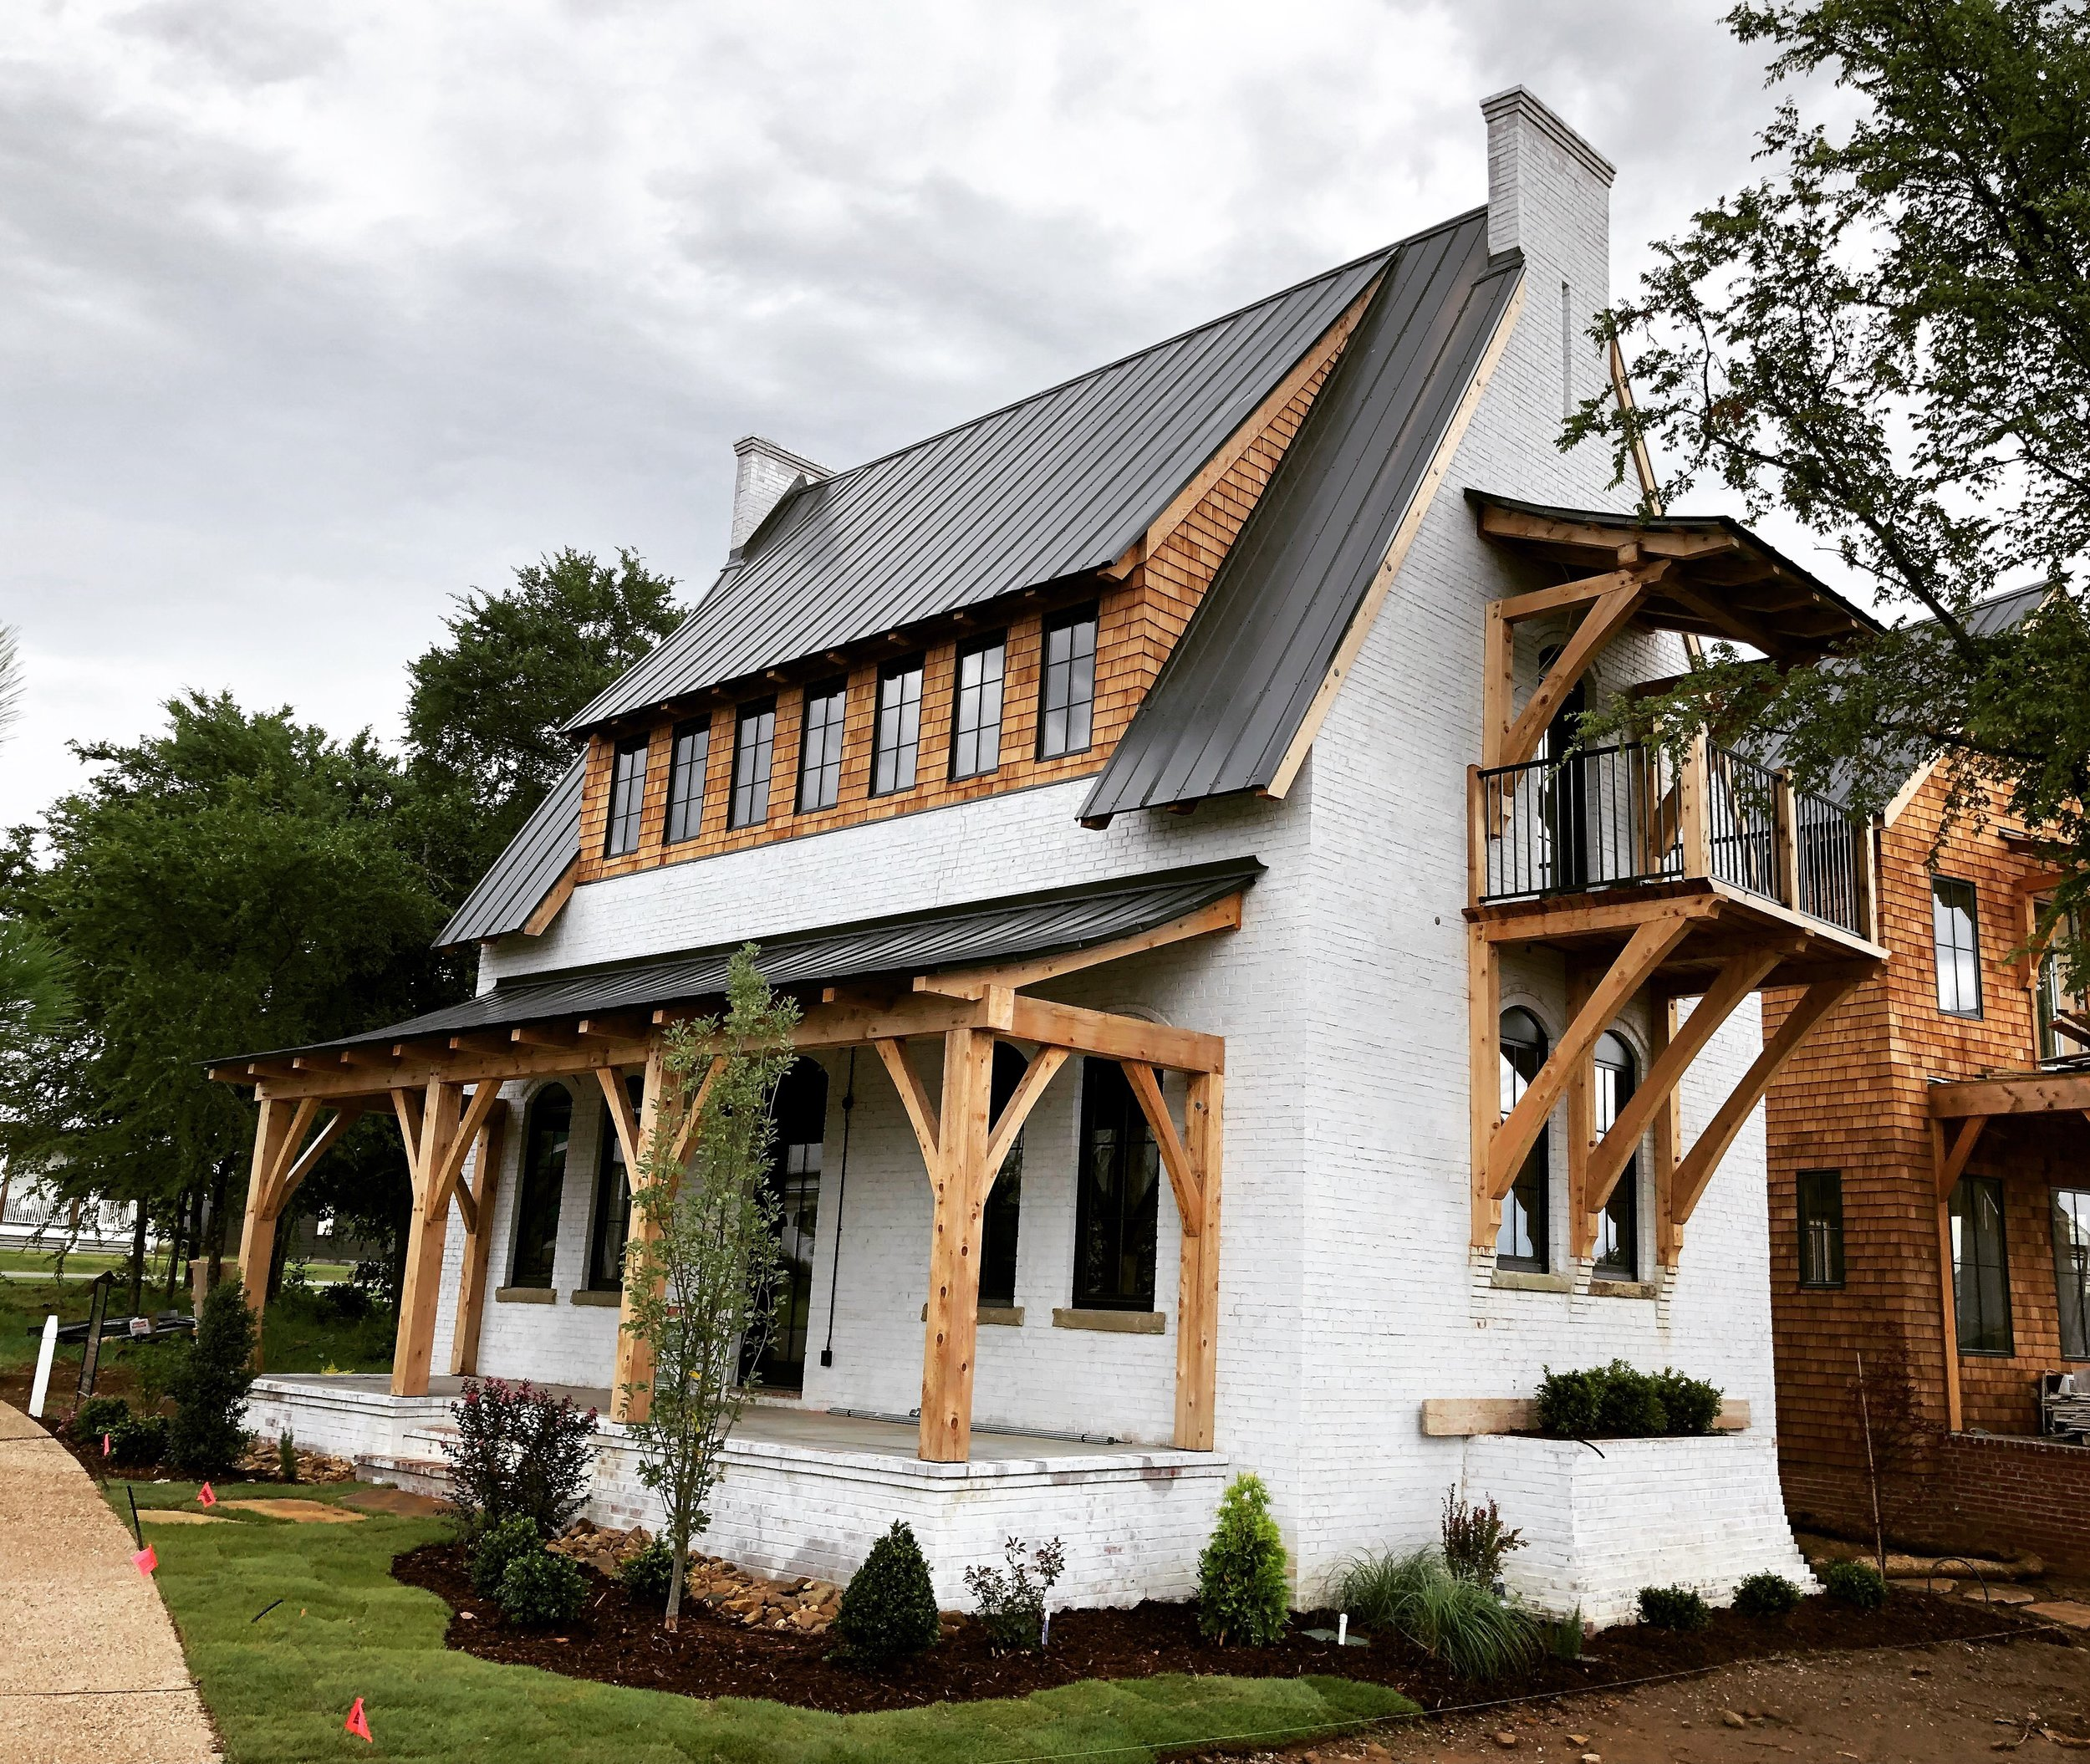 The Edison - a Solid Brick Masonry Home  with exposed whitewashed brick